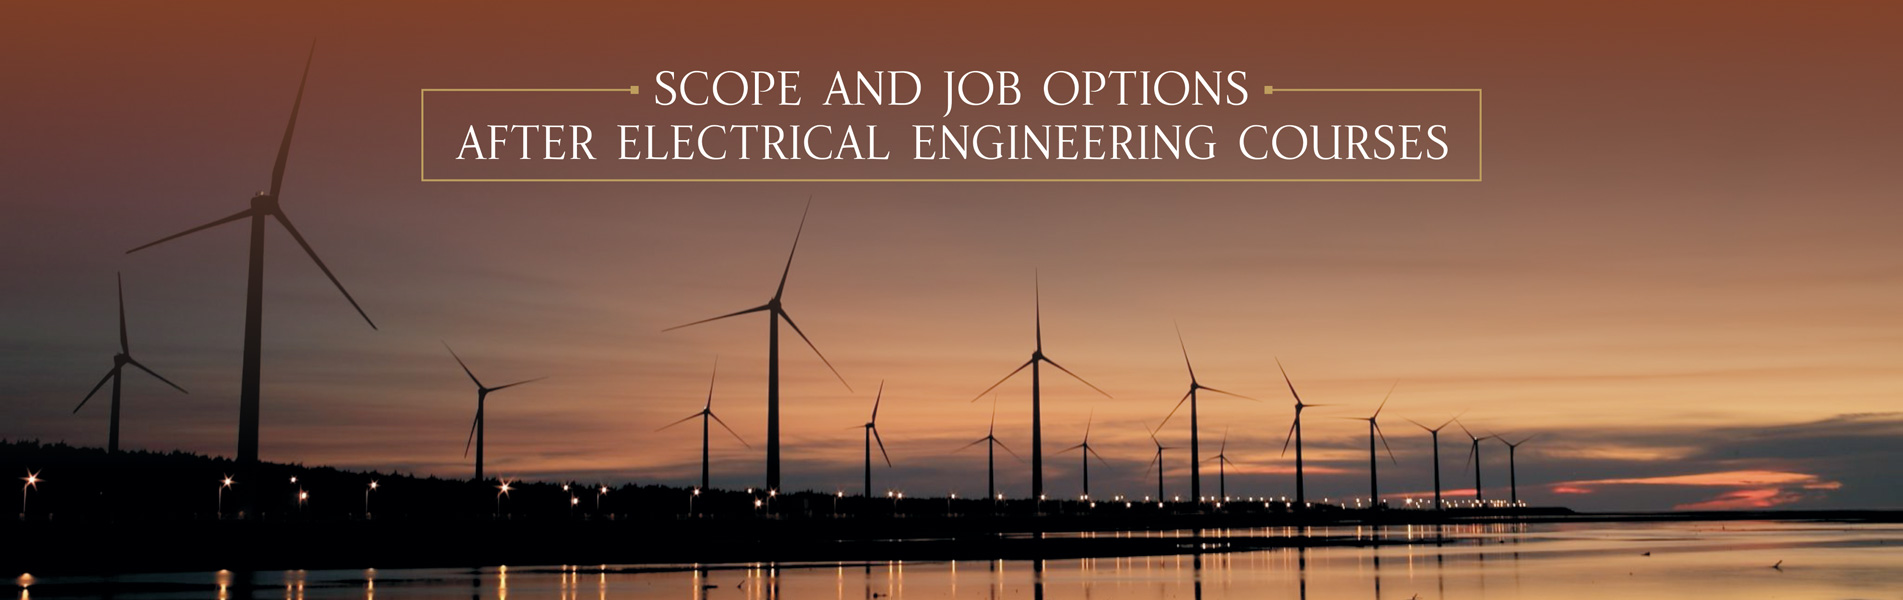 Scope-and-Job-Options-After-Electrical-Engineering-Courses